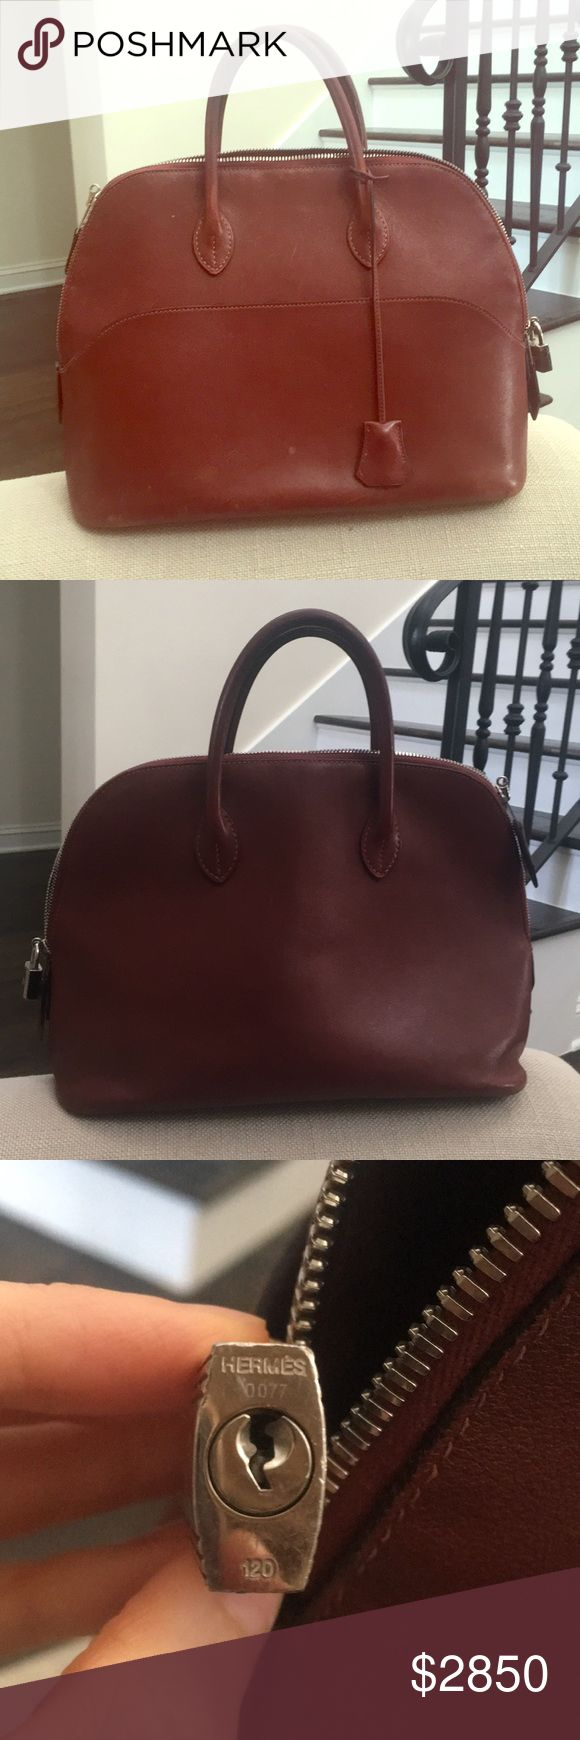 Hermès Bolide bag/purse, brick color Rare and beautiful brick colored Bolide bag. Some weathering on leather but all seams, zippers in great condition. Can be sent to Hermès spa for leather refurbishment at reasonable price. Hermes Bags Totes